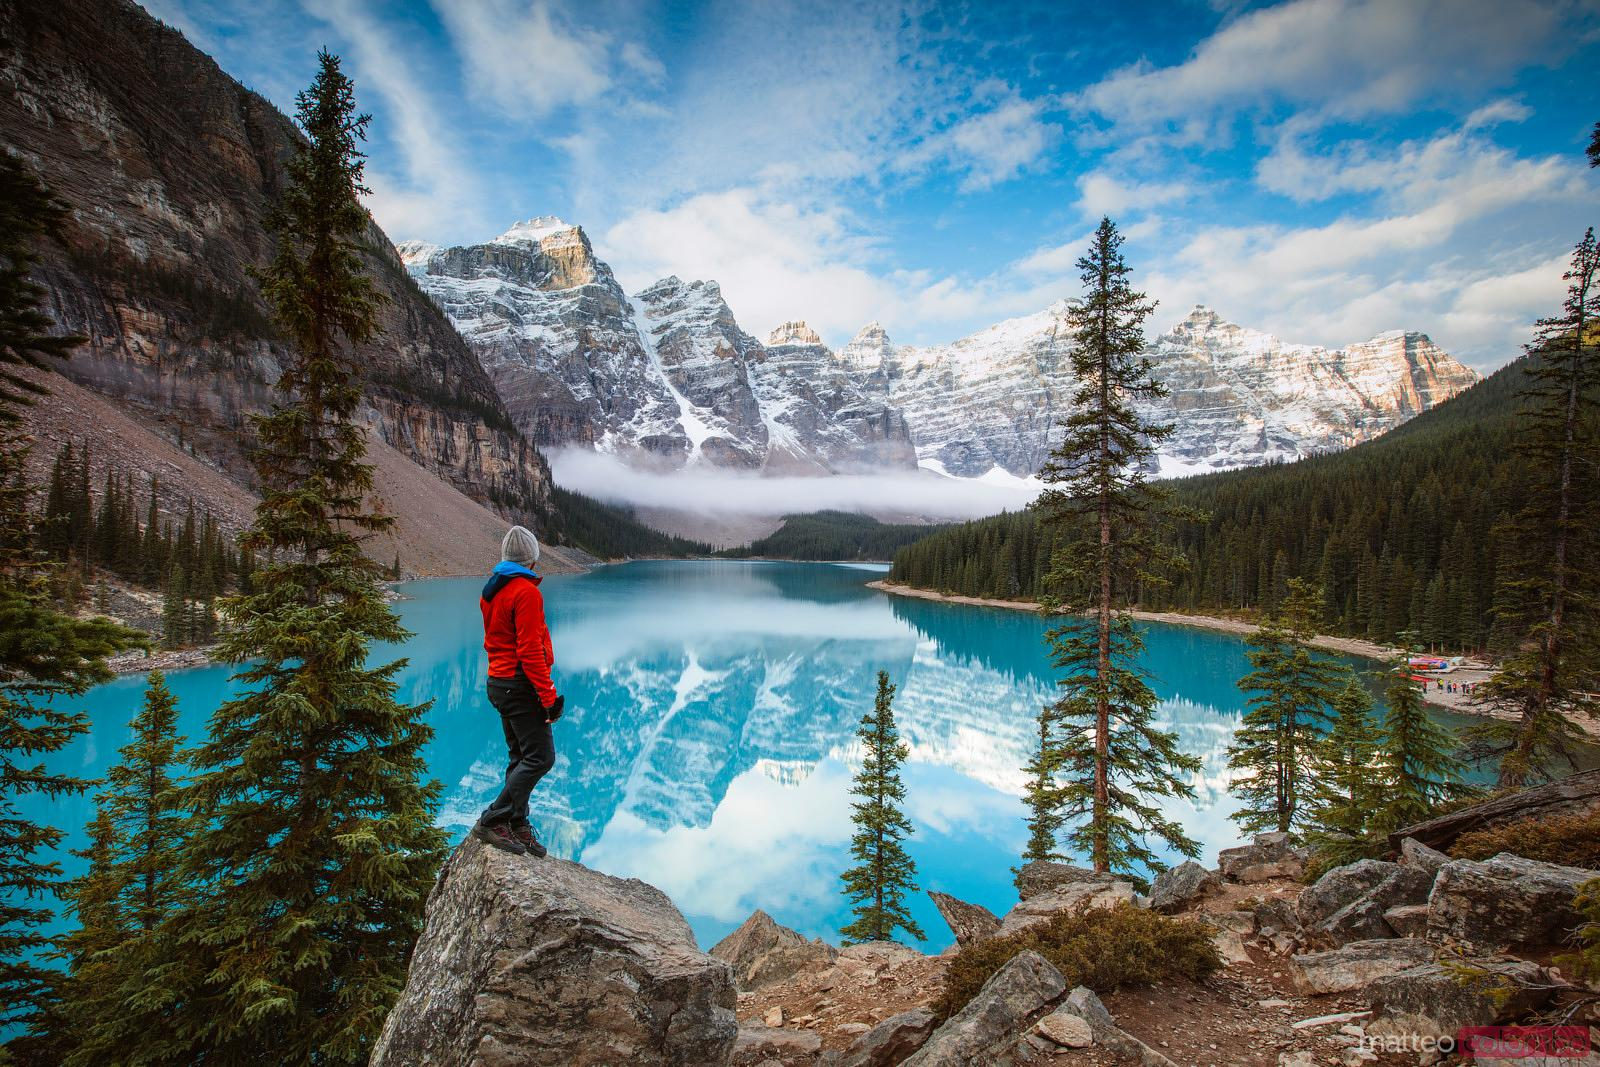 Most-Photographed Moraine Lake - Canada - World for Travel